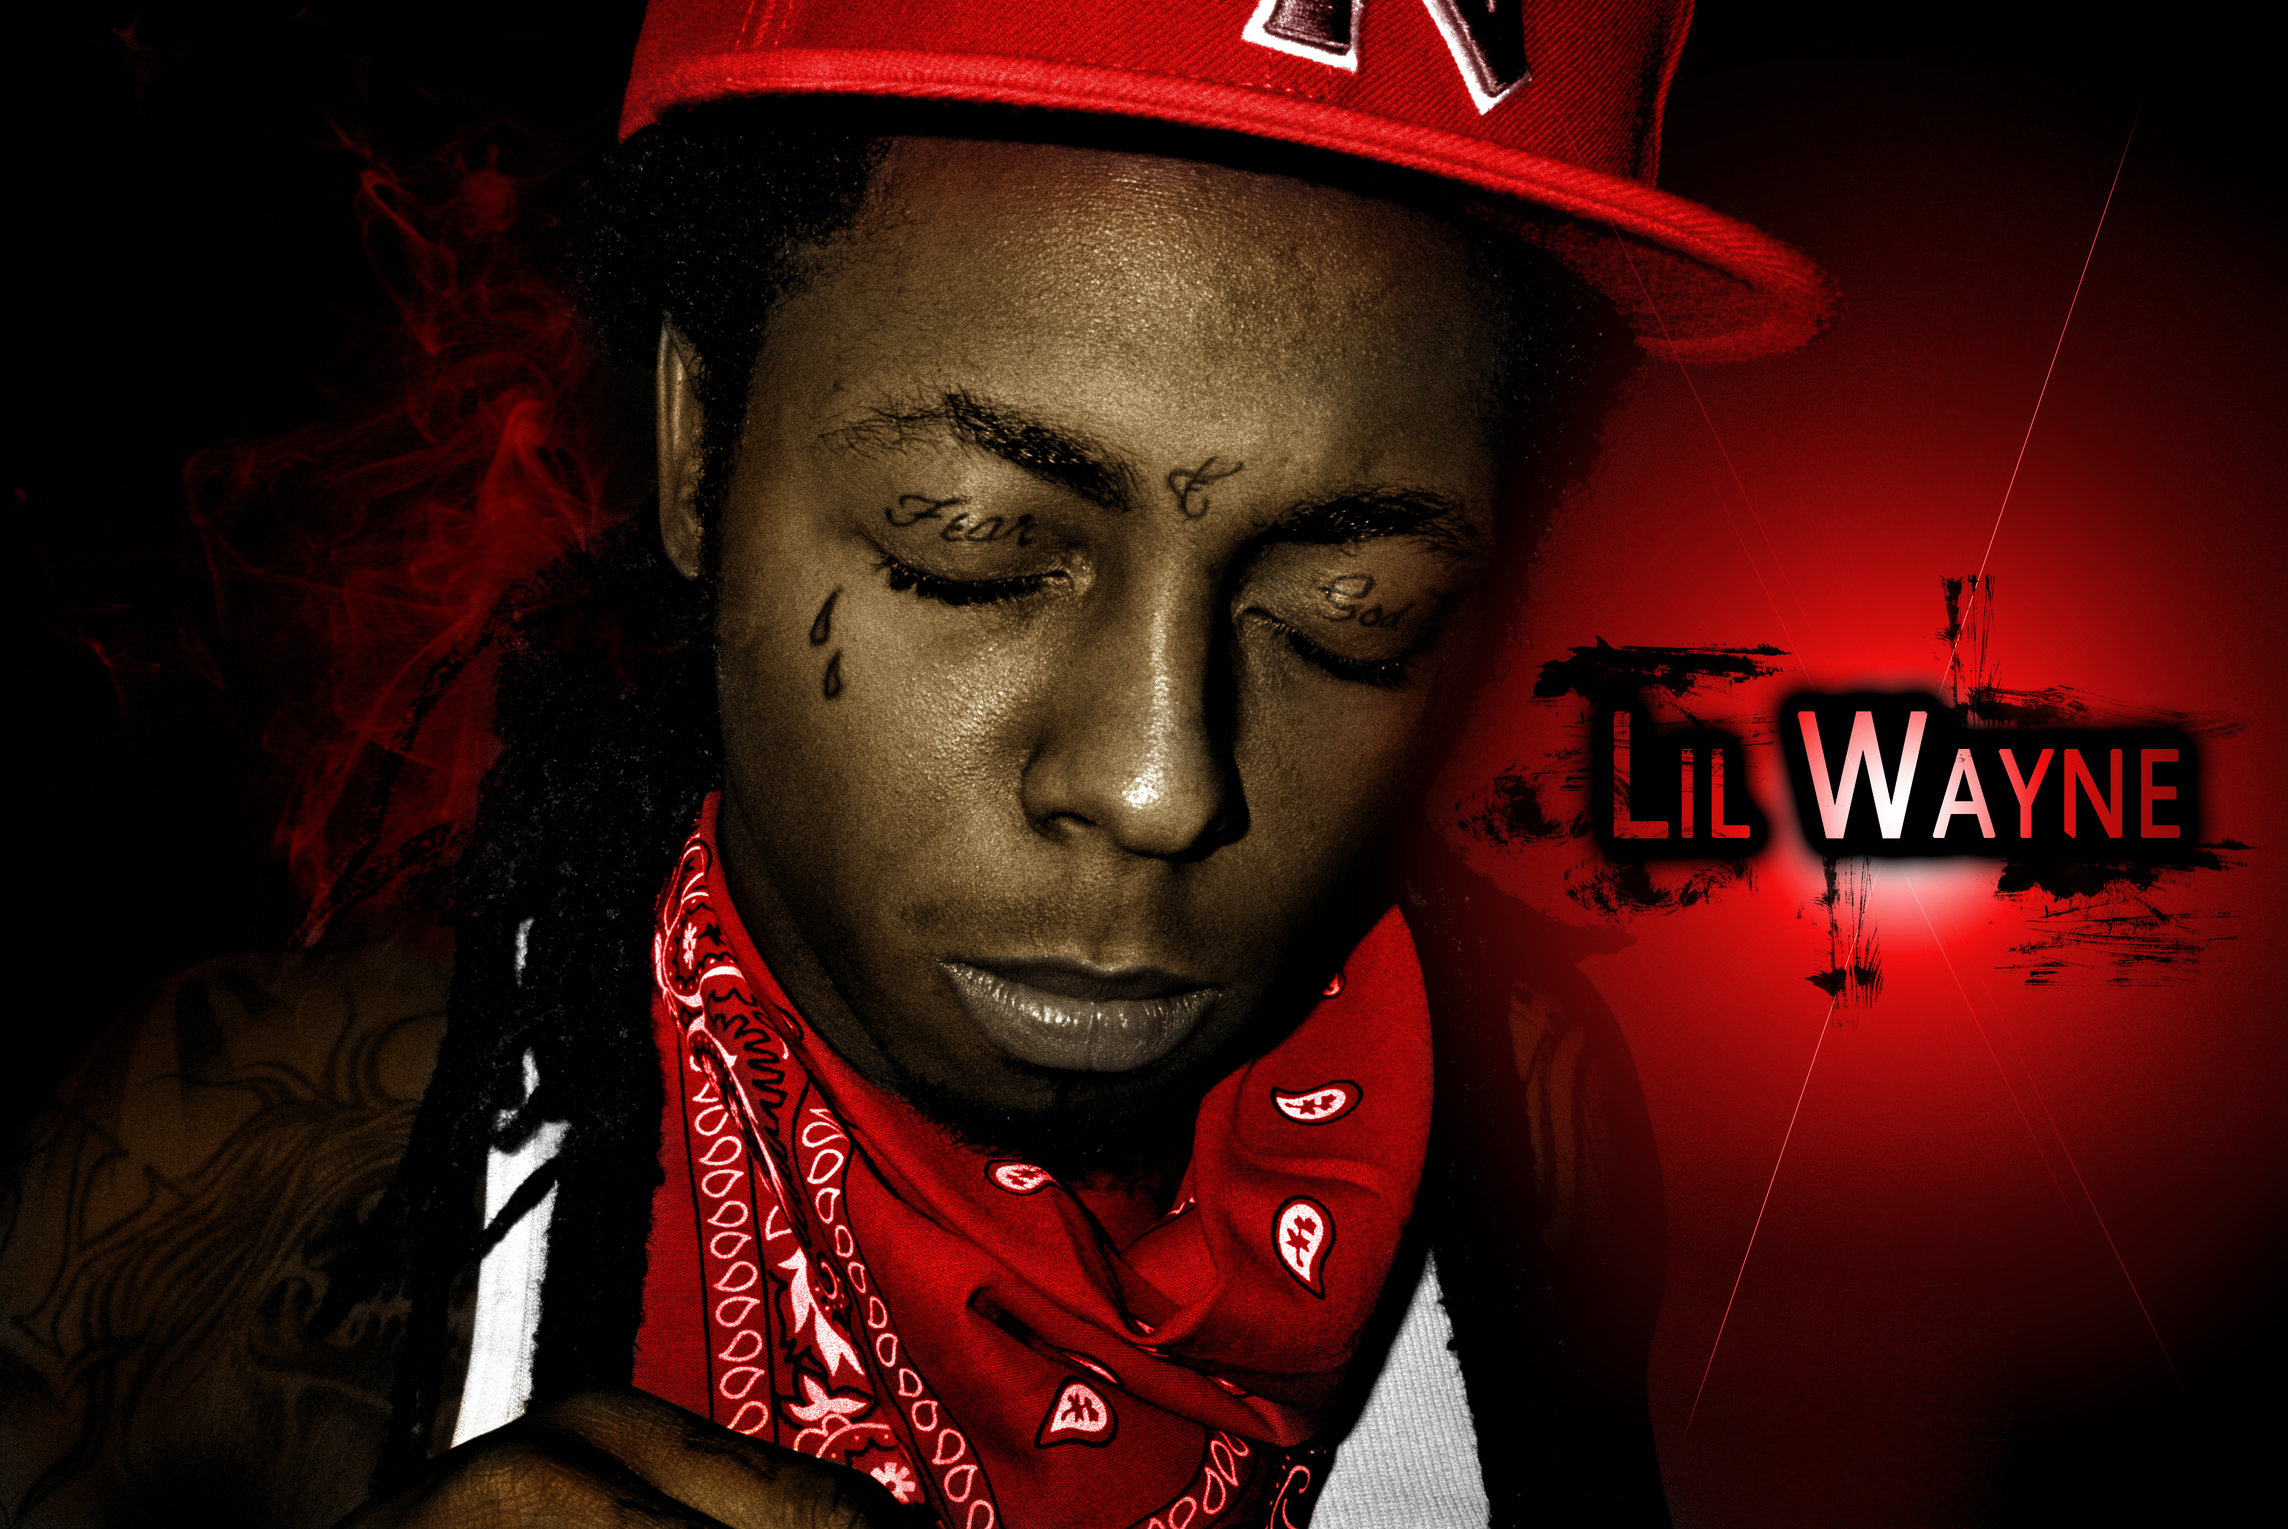 Old Lil Wayne Black and White picture colored   Page 2 2288x1529